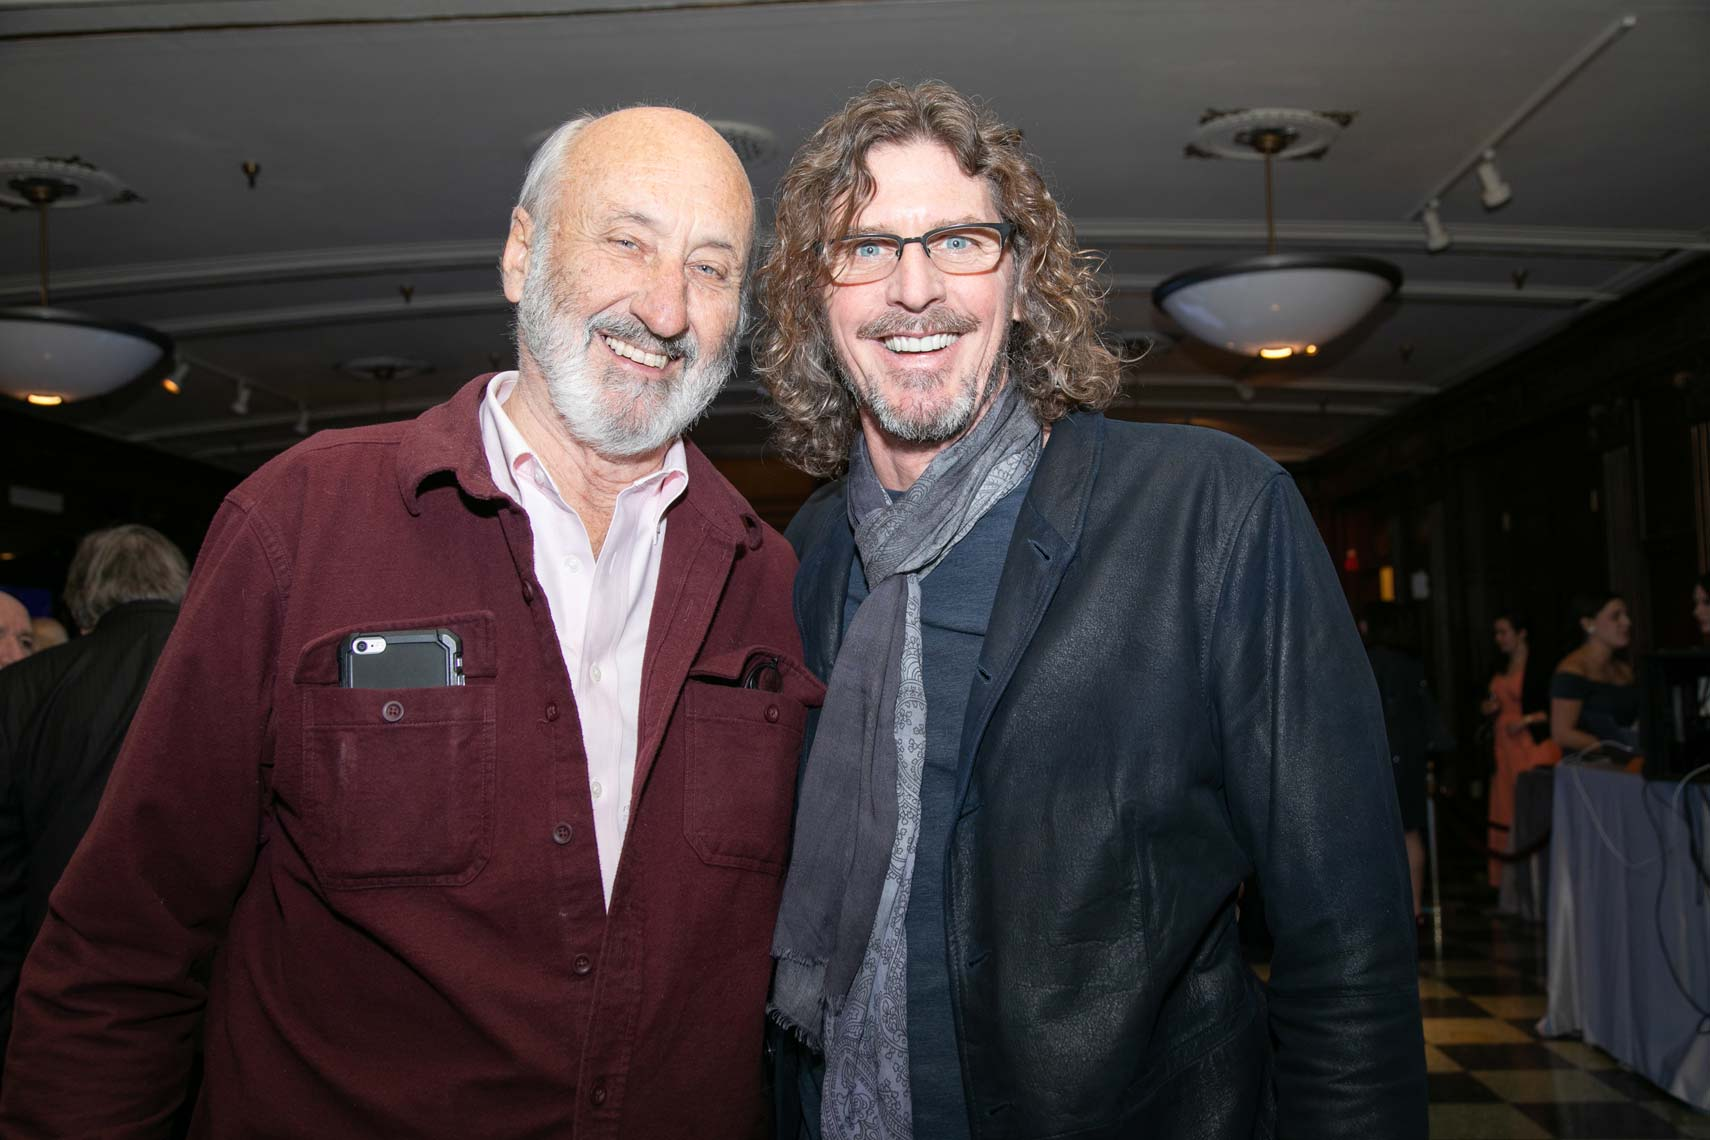 Noel Paul Stookey with music philanthropist Ernie Boch Jr at the Boch Center